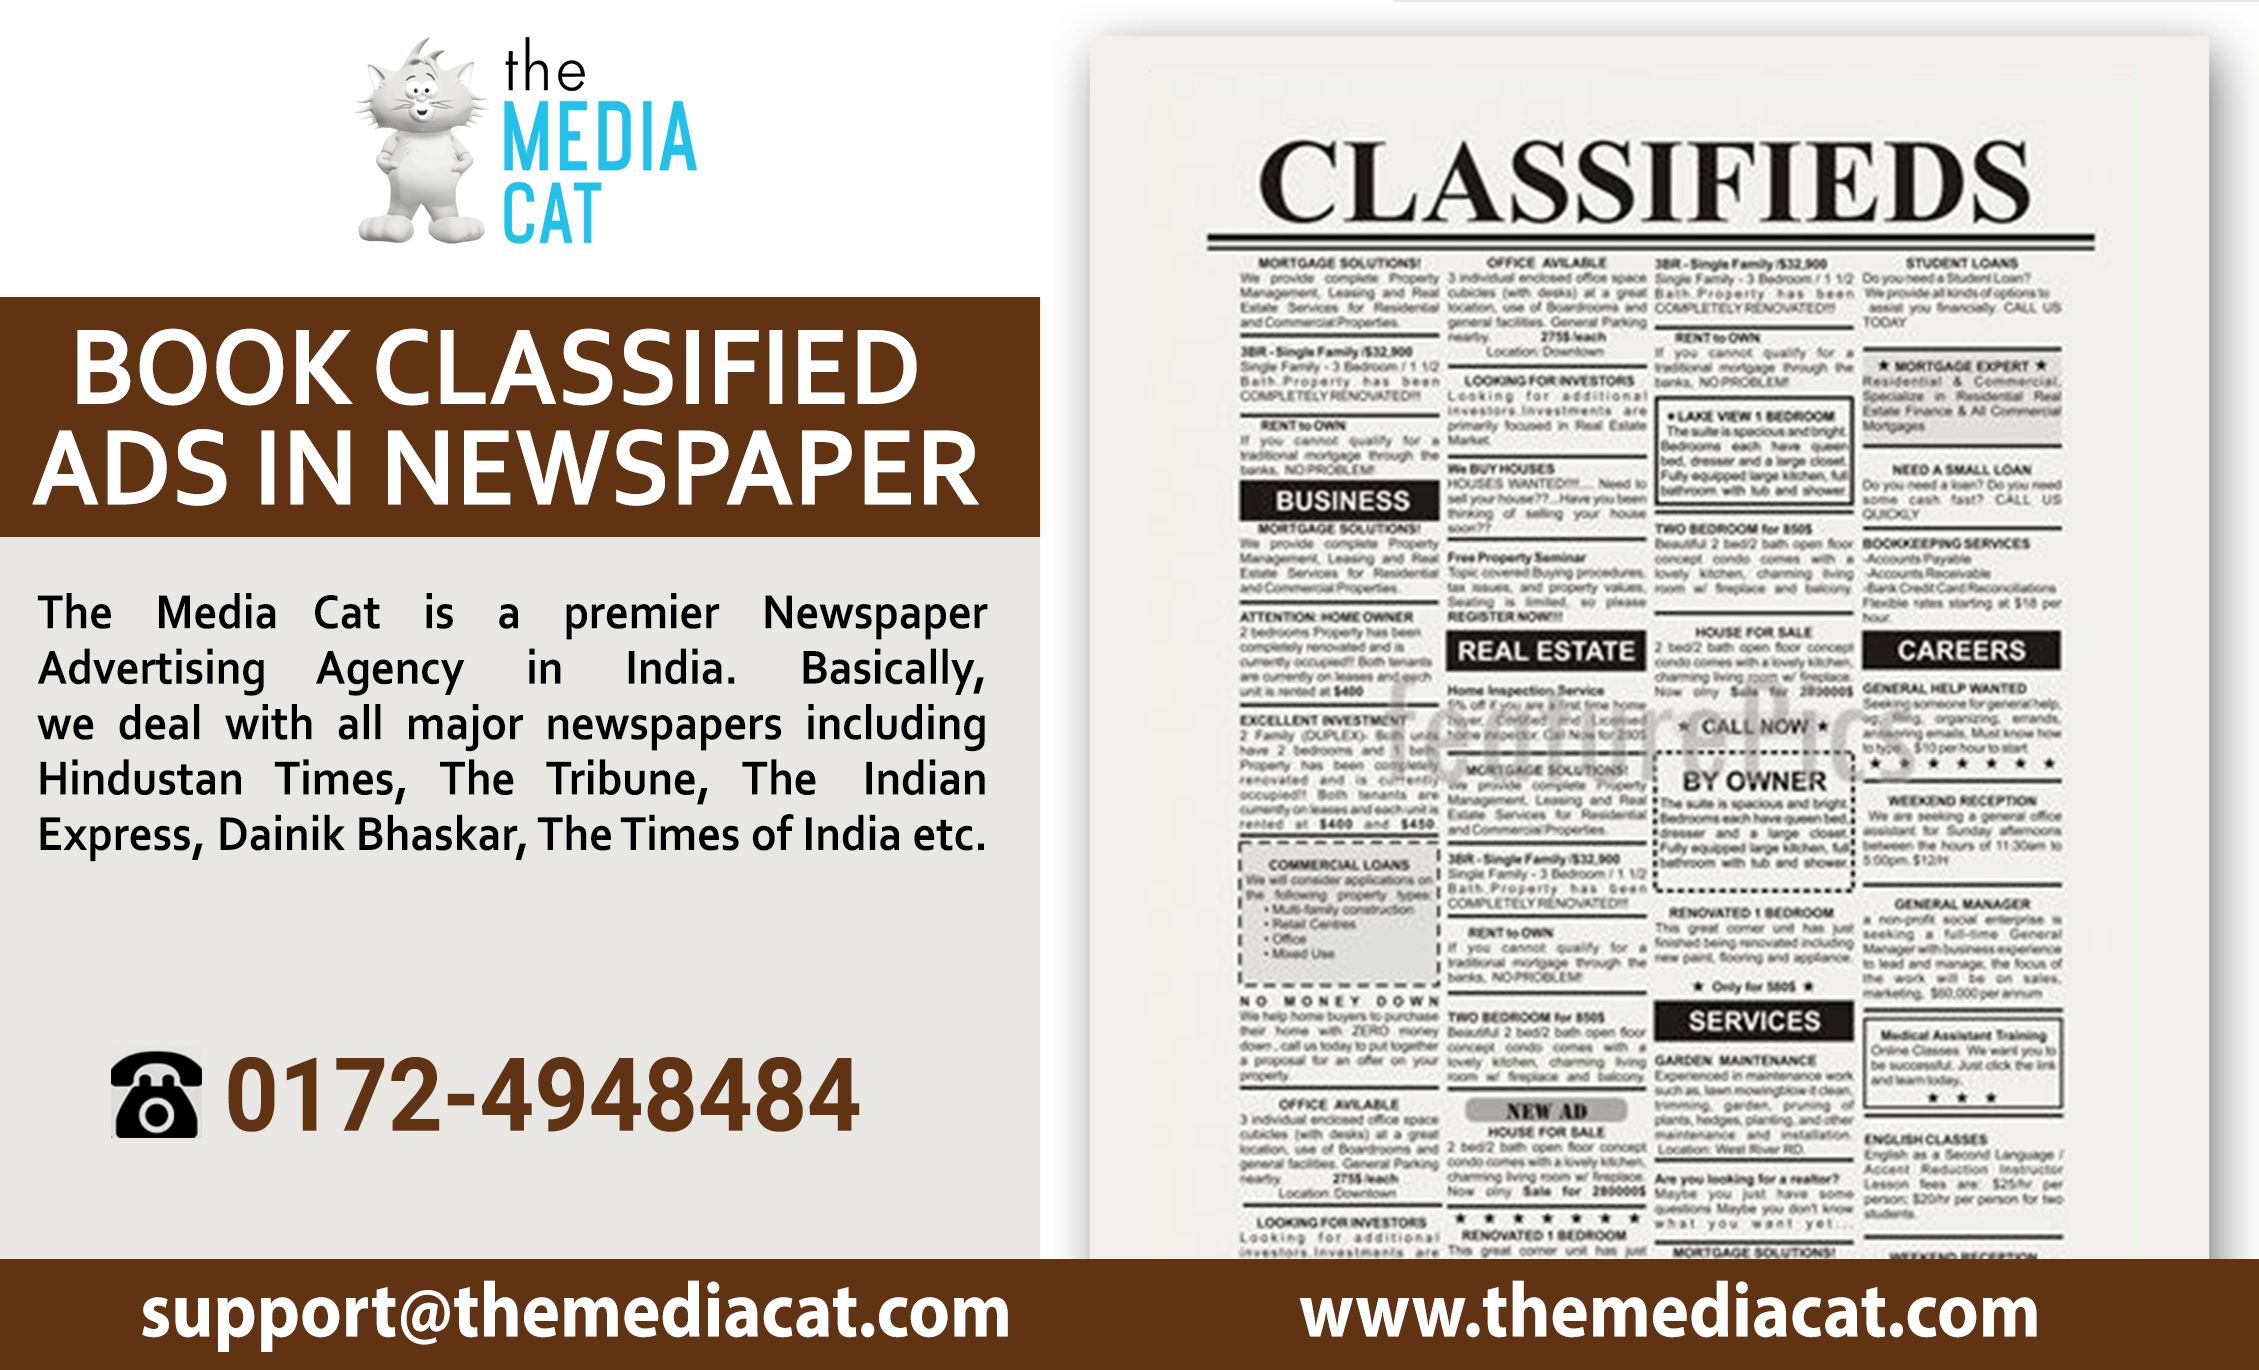 Now, Advertise your business by Classified Ads in Newspaper through